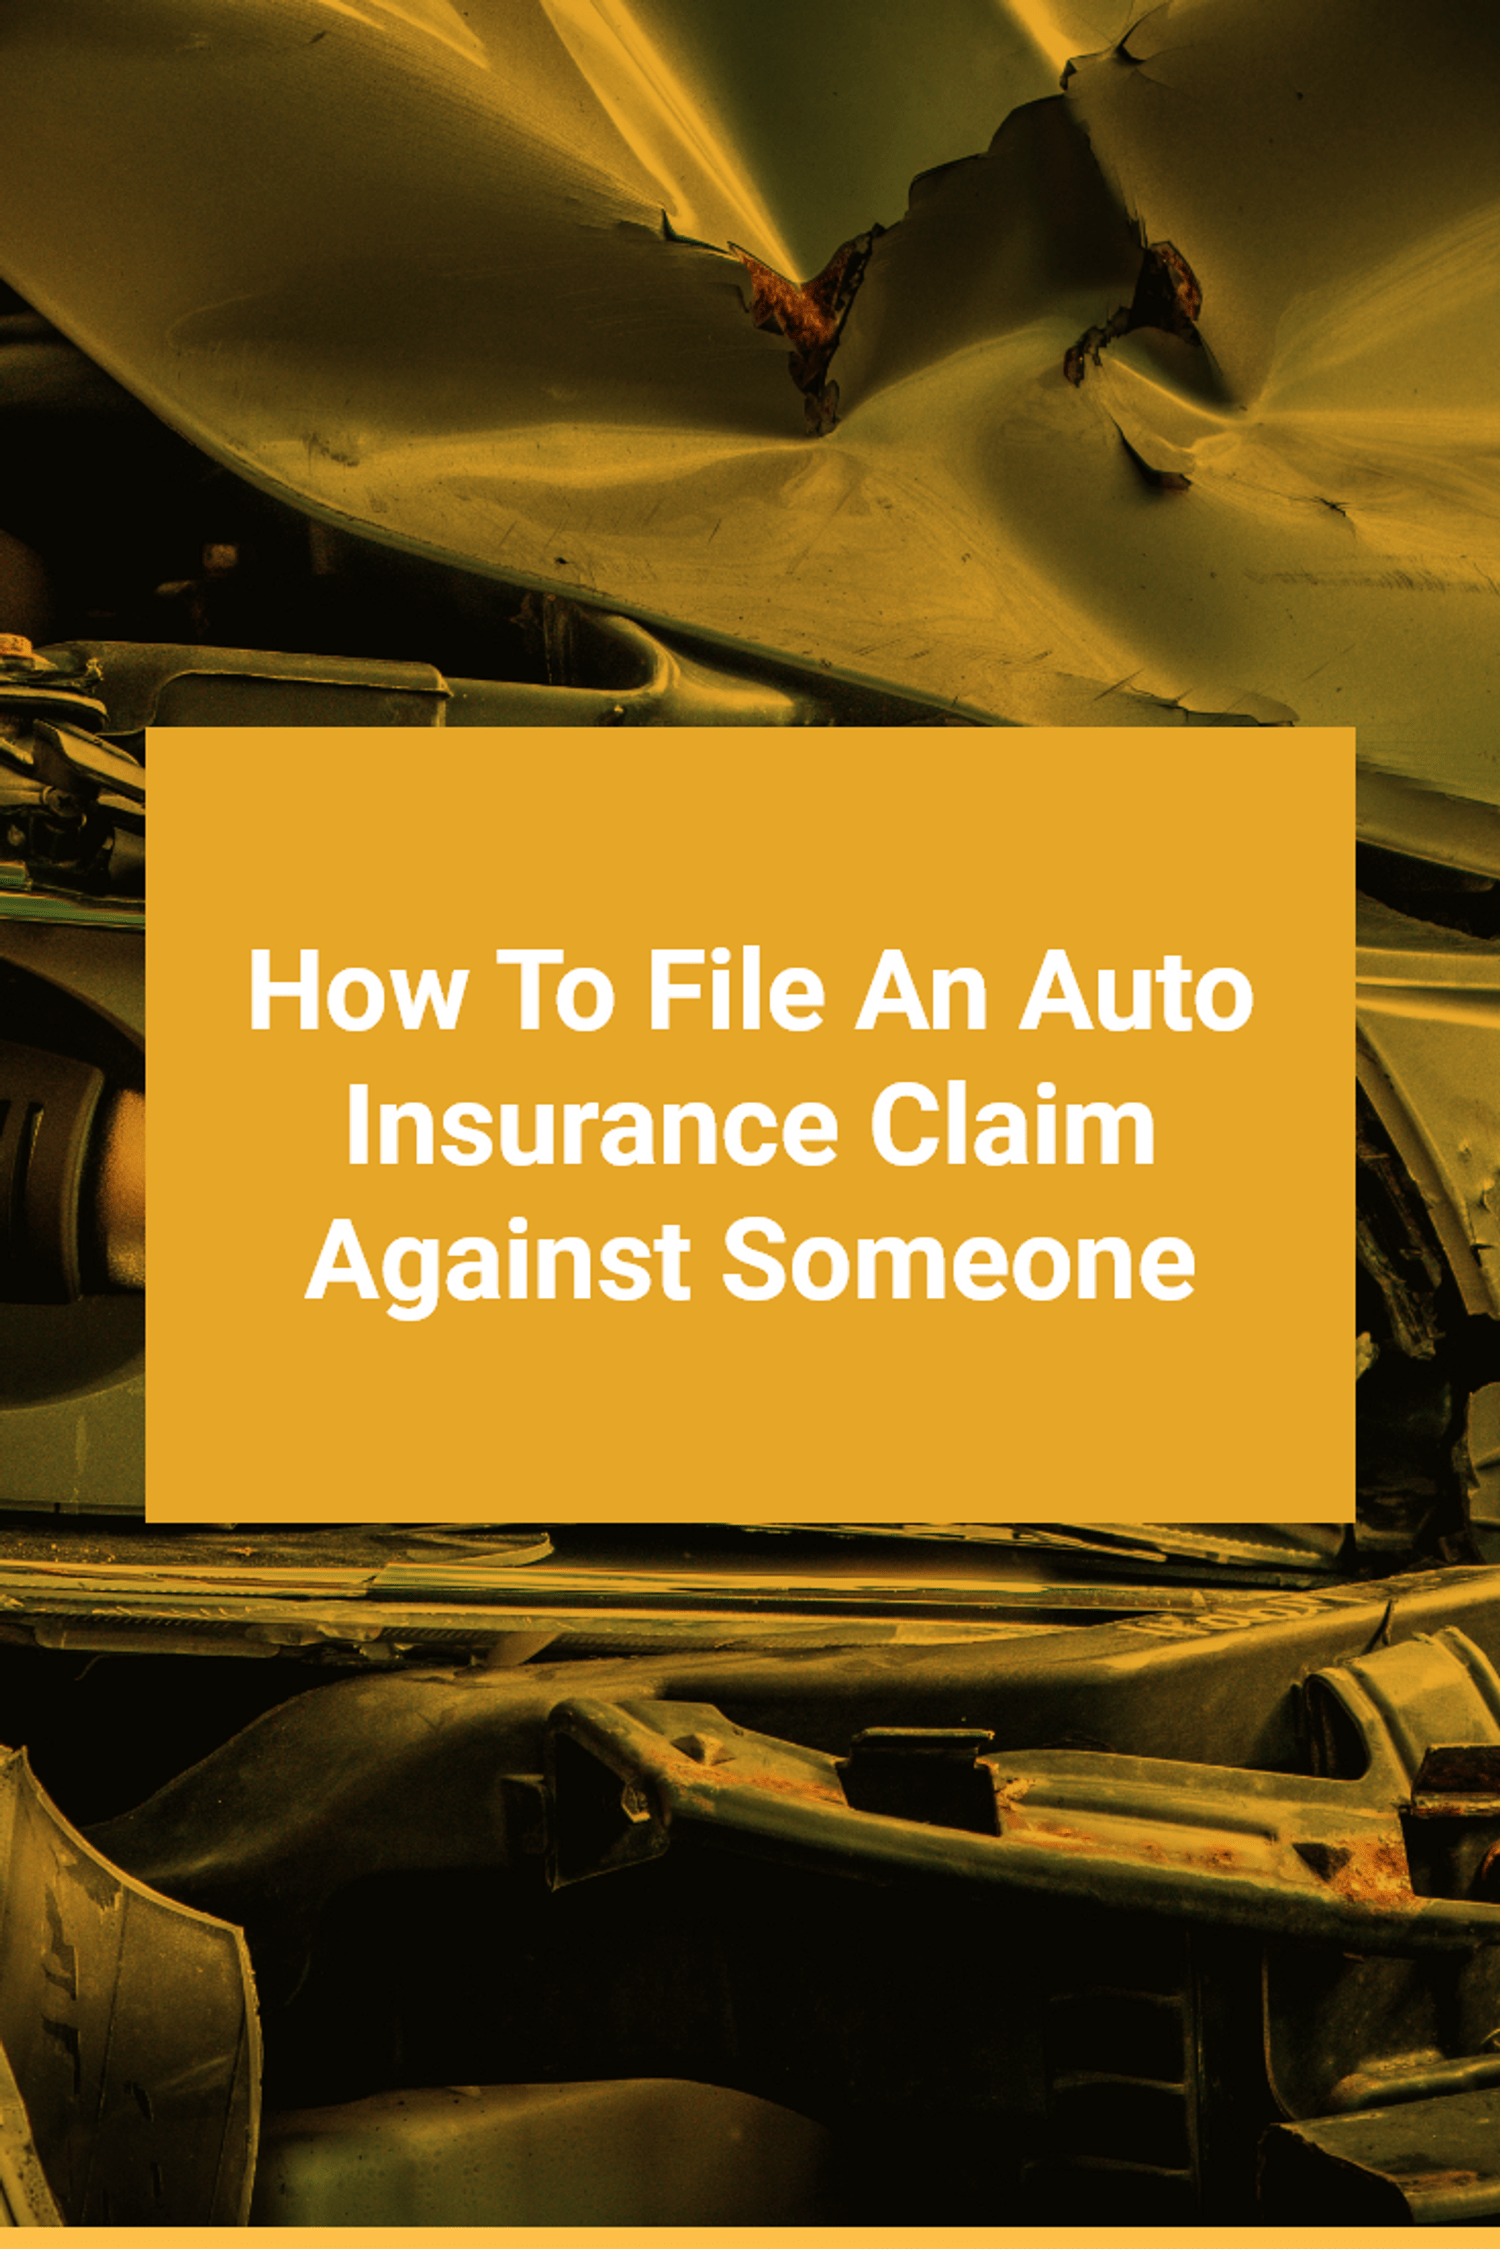 How To File An Auto Insurance Claim Against Someone in Michigan